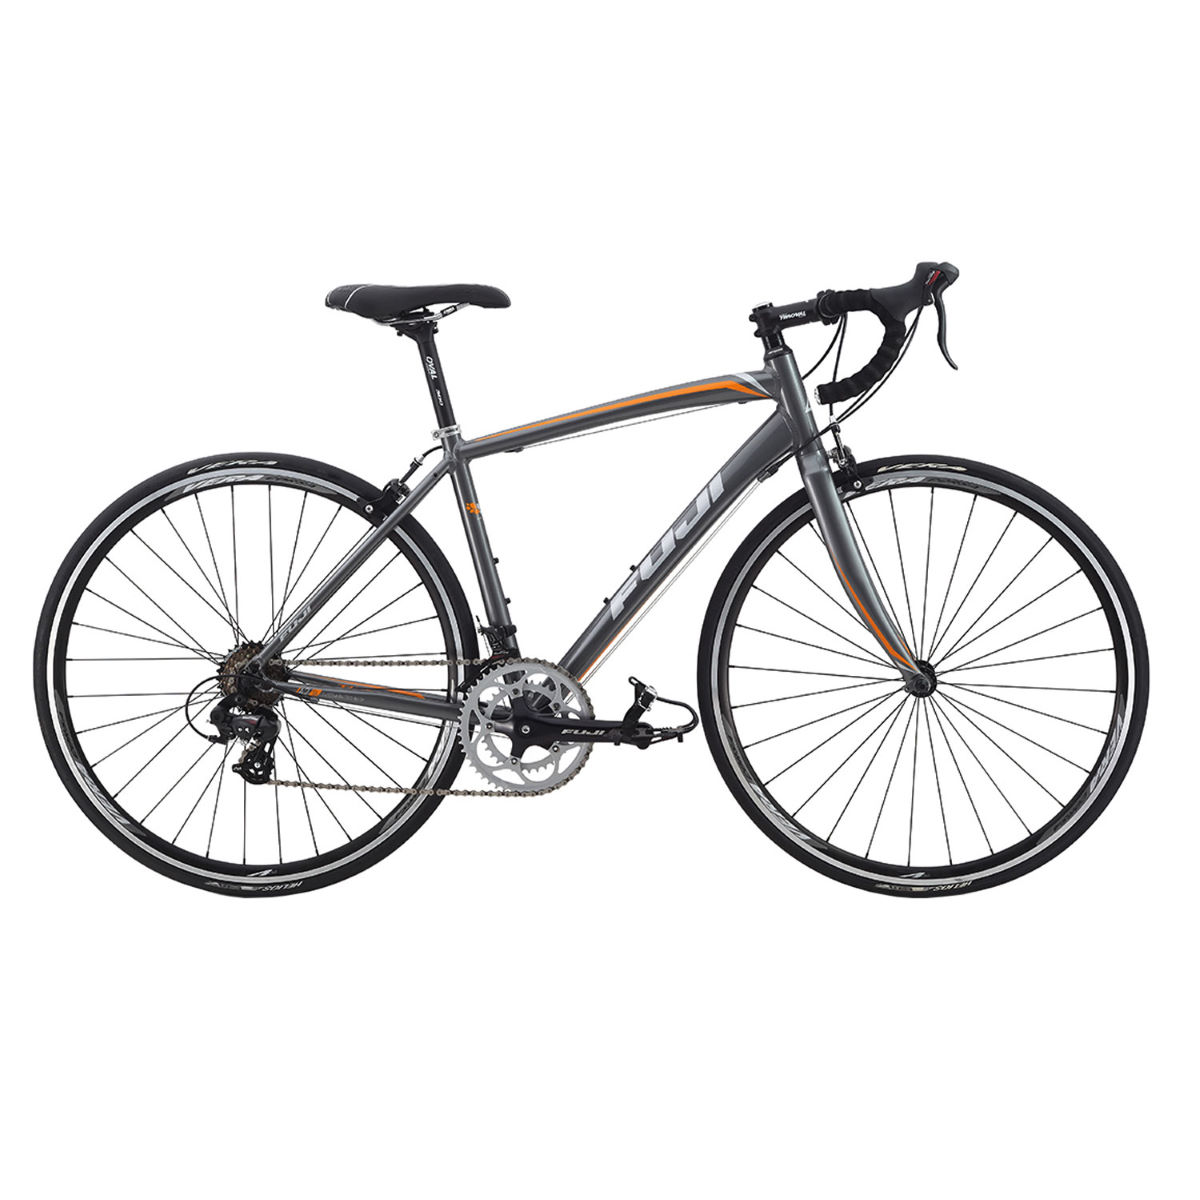 Vélo de route Fuji Finest 2.3 (2015) - 50cm Gris/Orange Vélos de route